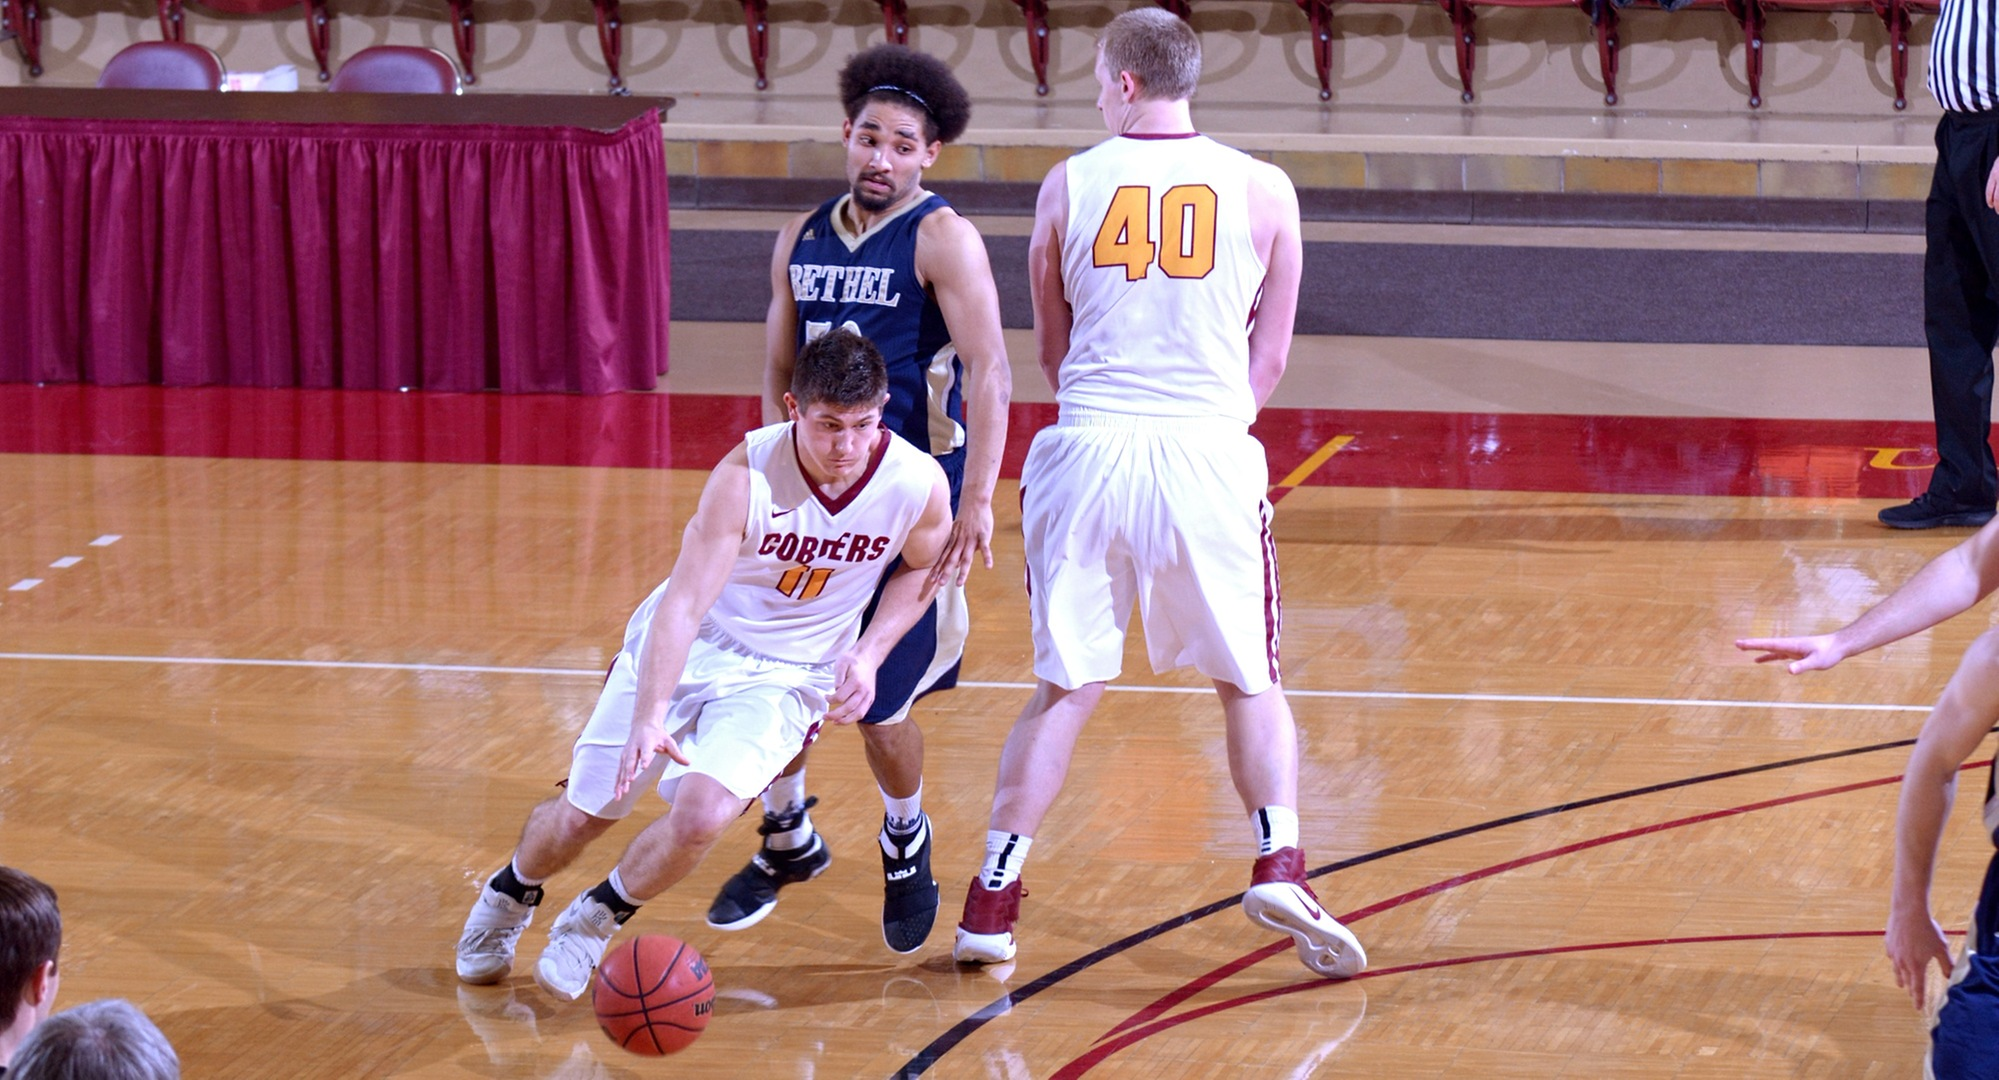 Senior Dylan Alderman scored a career-high 33 points in the Cobbers' final regular-season road game at Bethel.